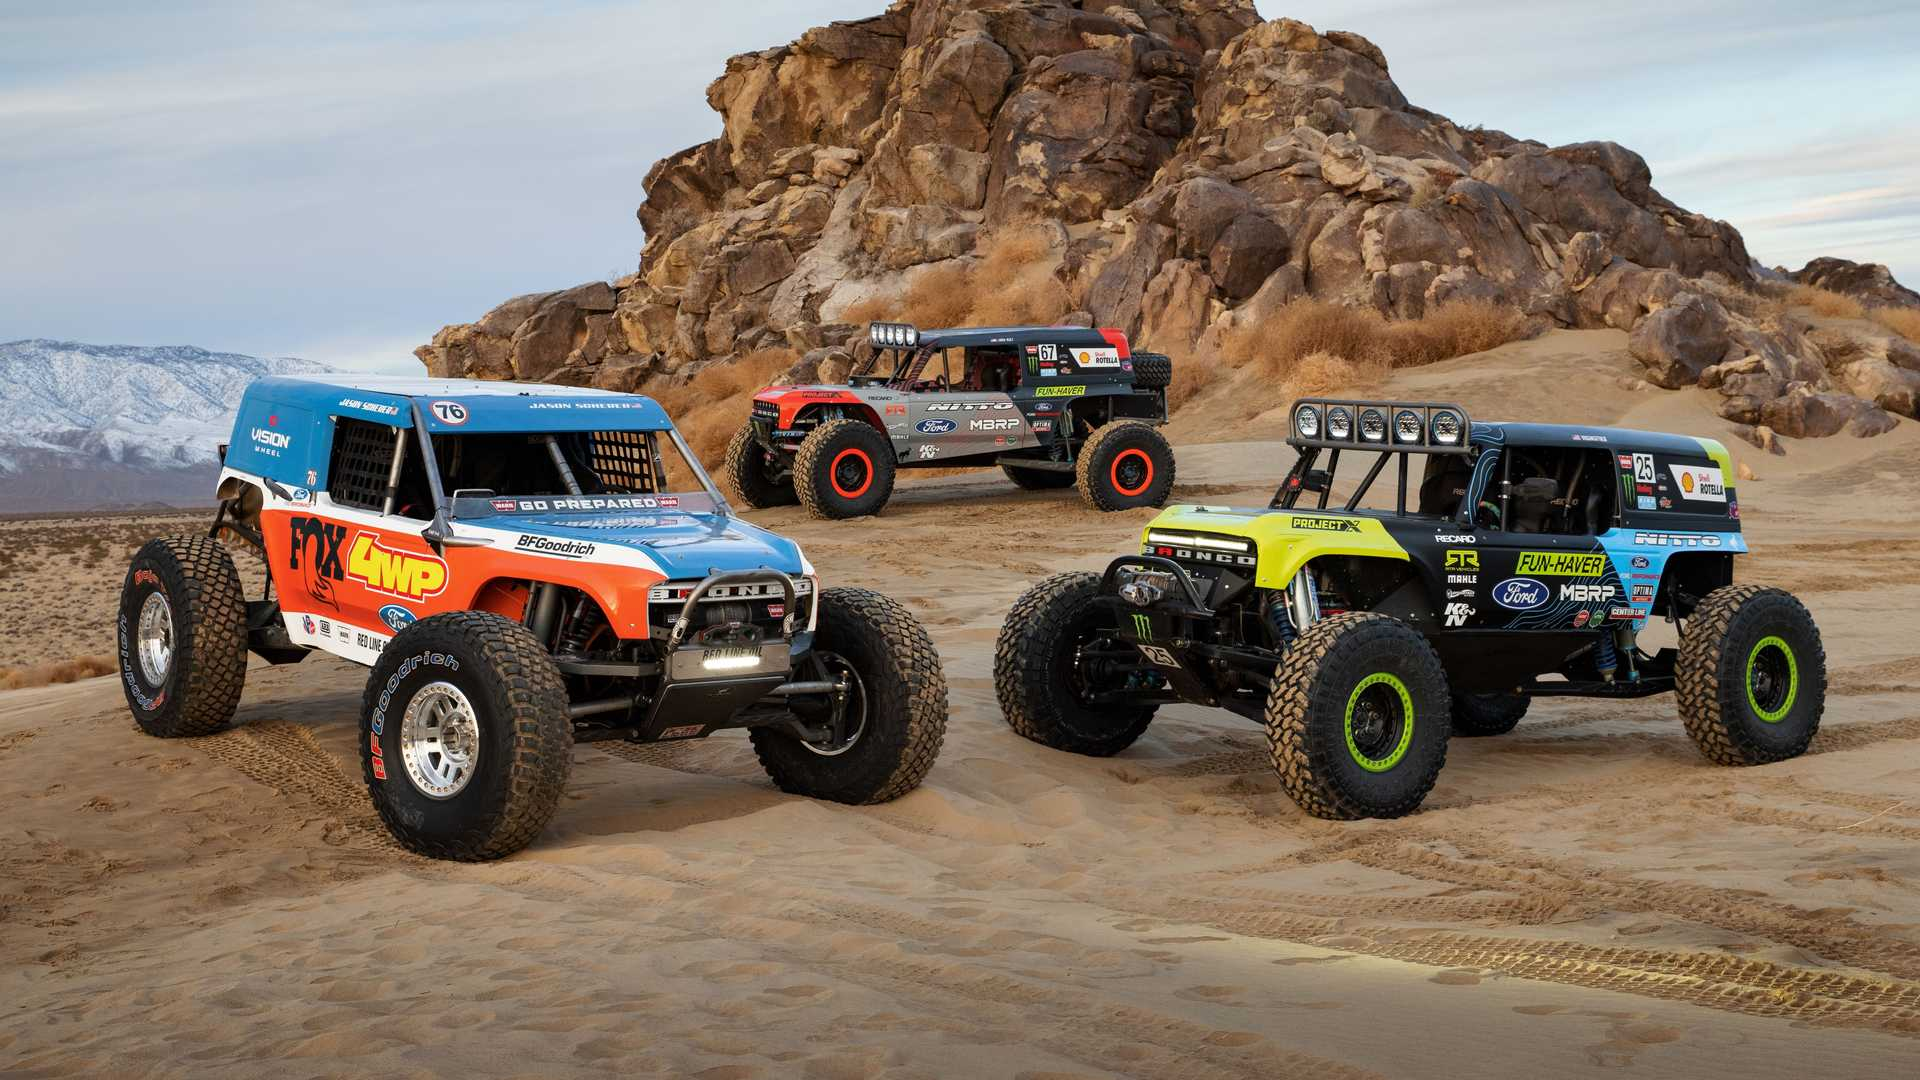 https://cdn.motor1.com/images/mgl/NY0OM/s6/ford-bronco-ultra4-4400-unlimited-class-race-truck-trio.jpg